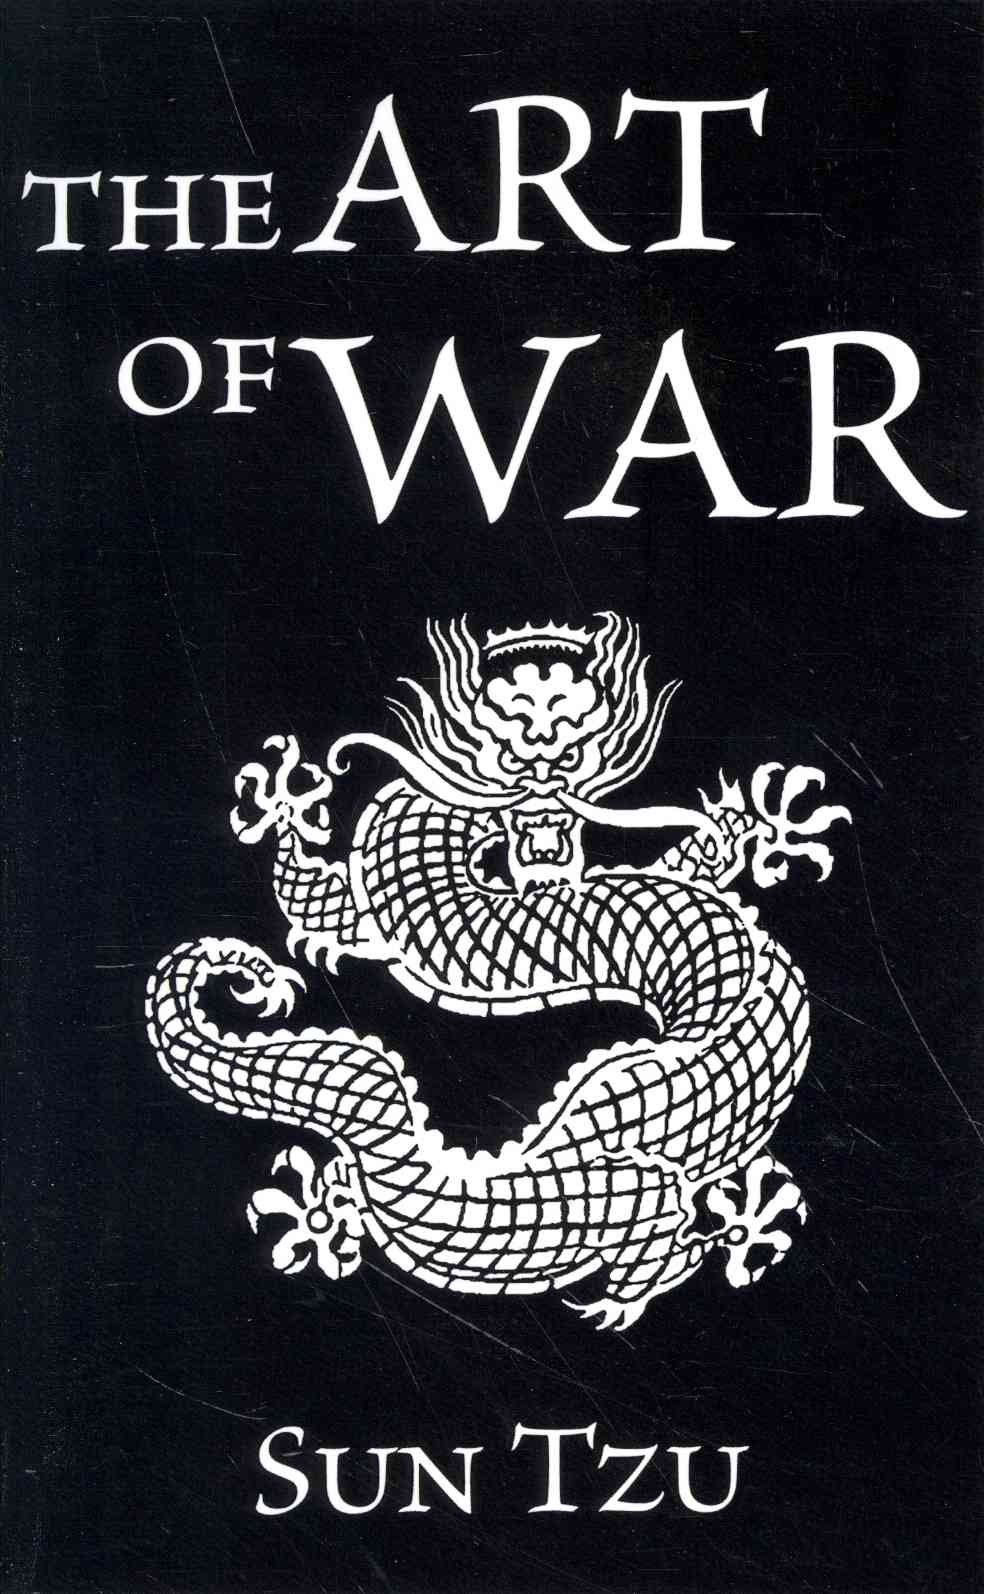 The Art of War by Sun Tsu